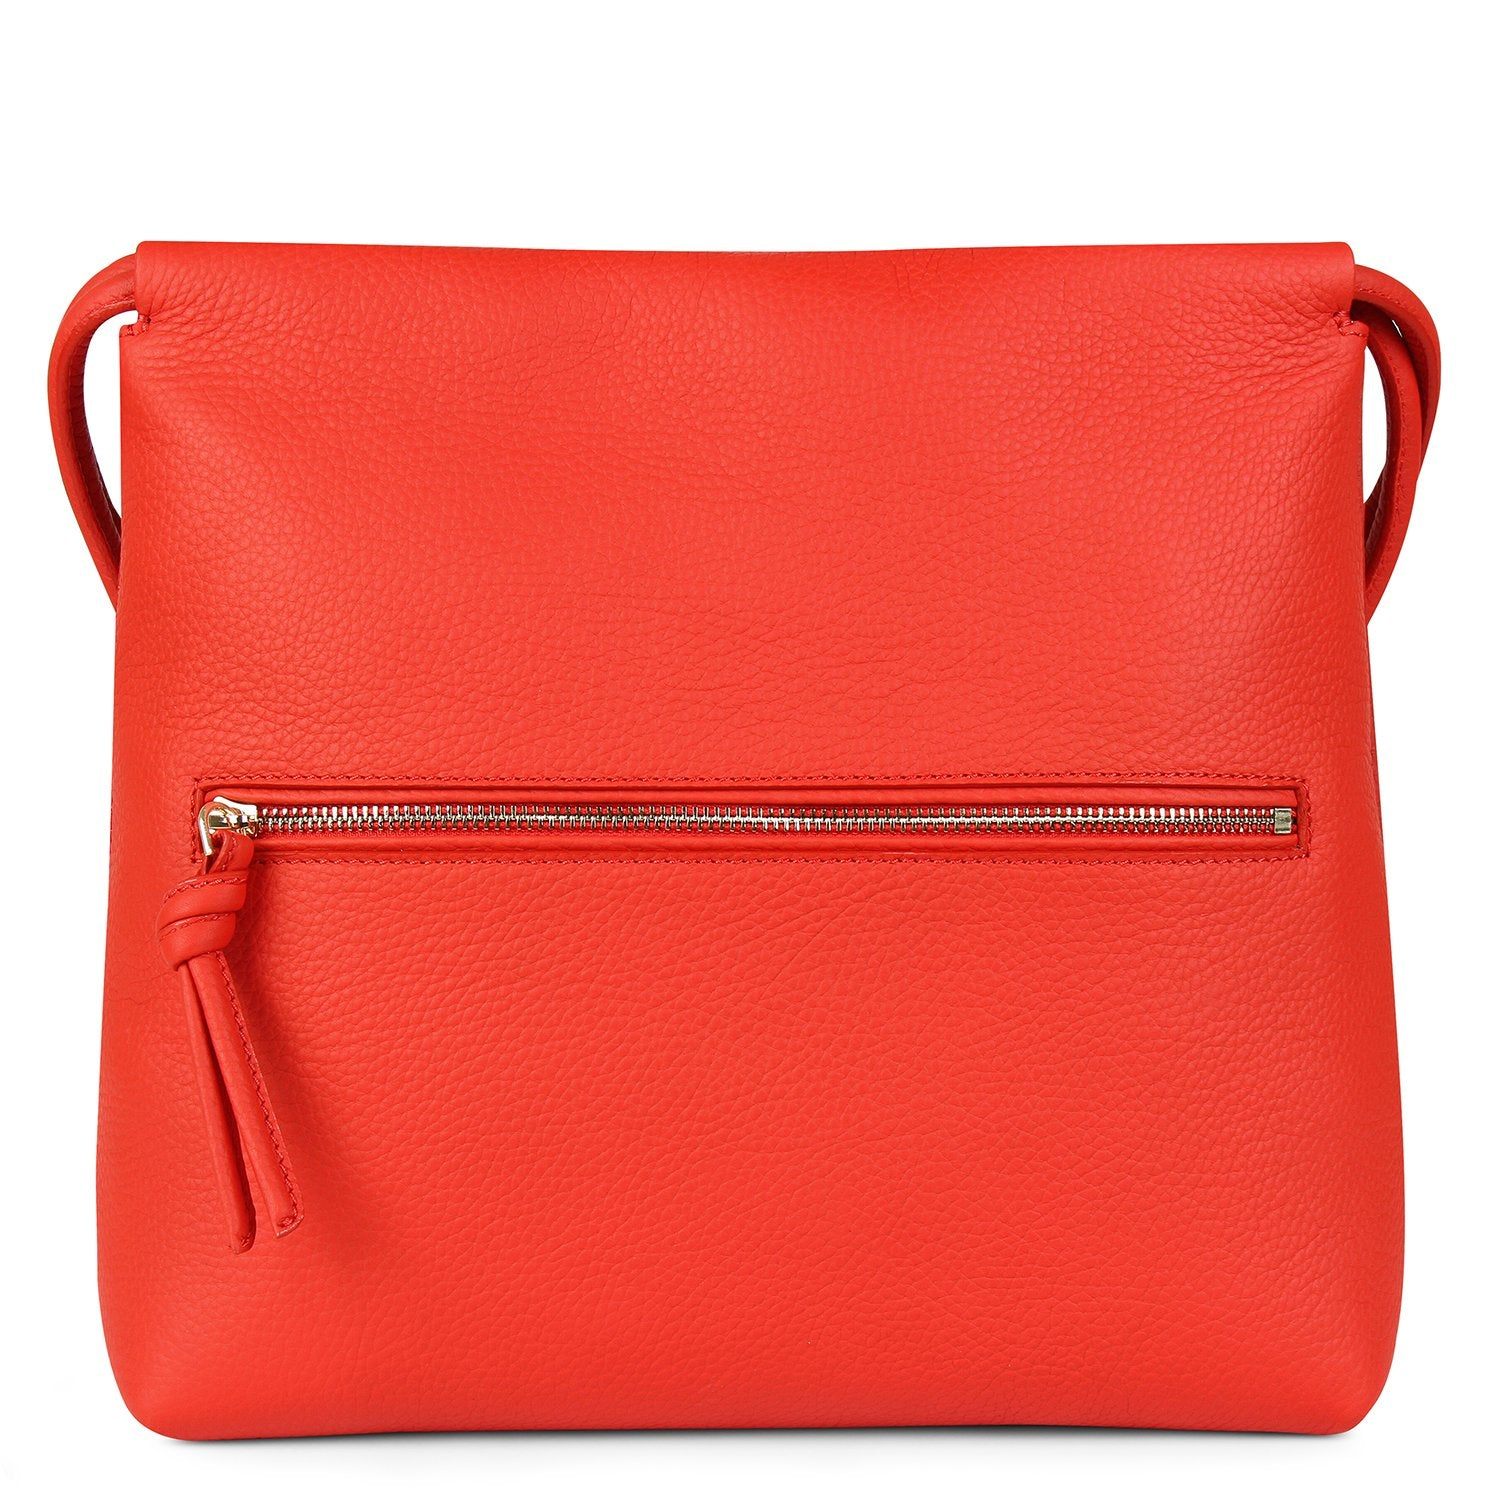 A convertible leather red shoulder bag for women with a knot detail on the strap that could be used as a clutch bag with its roll down feature, back image.